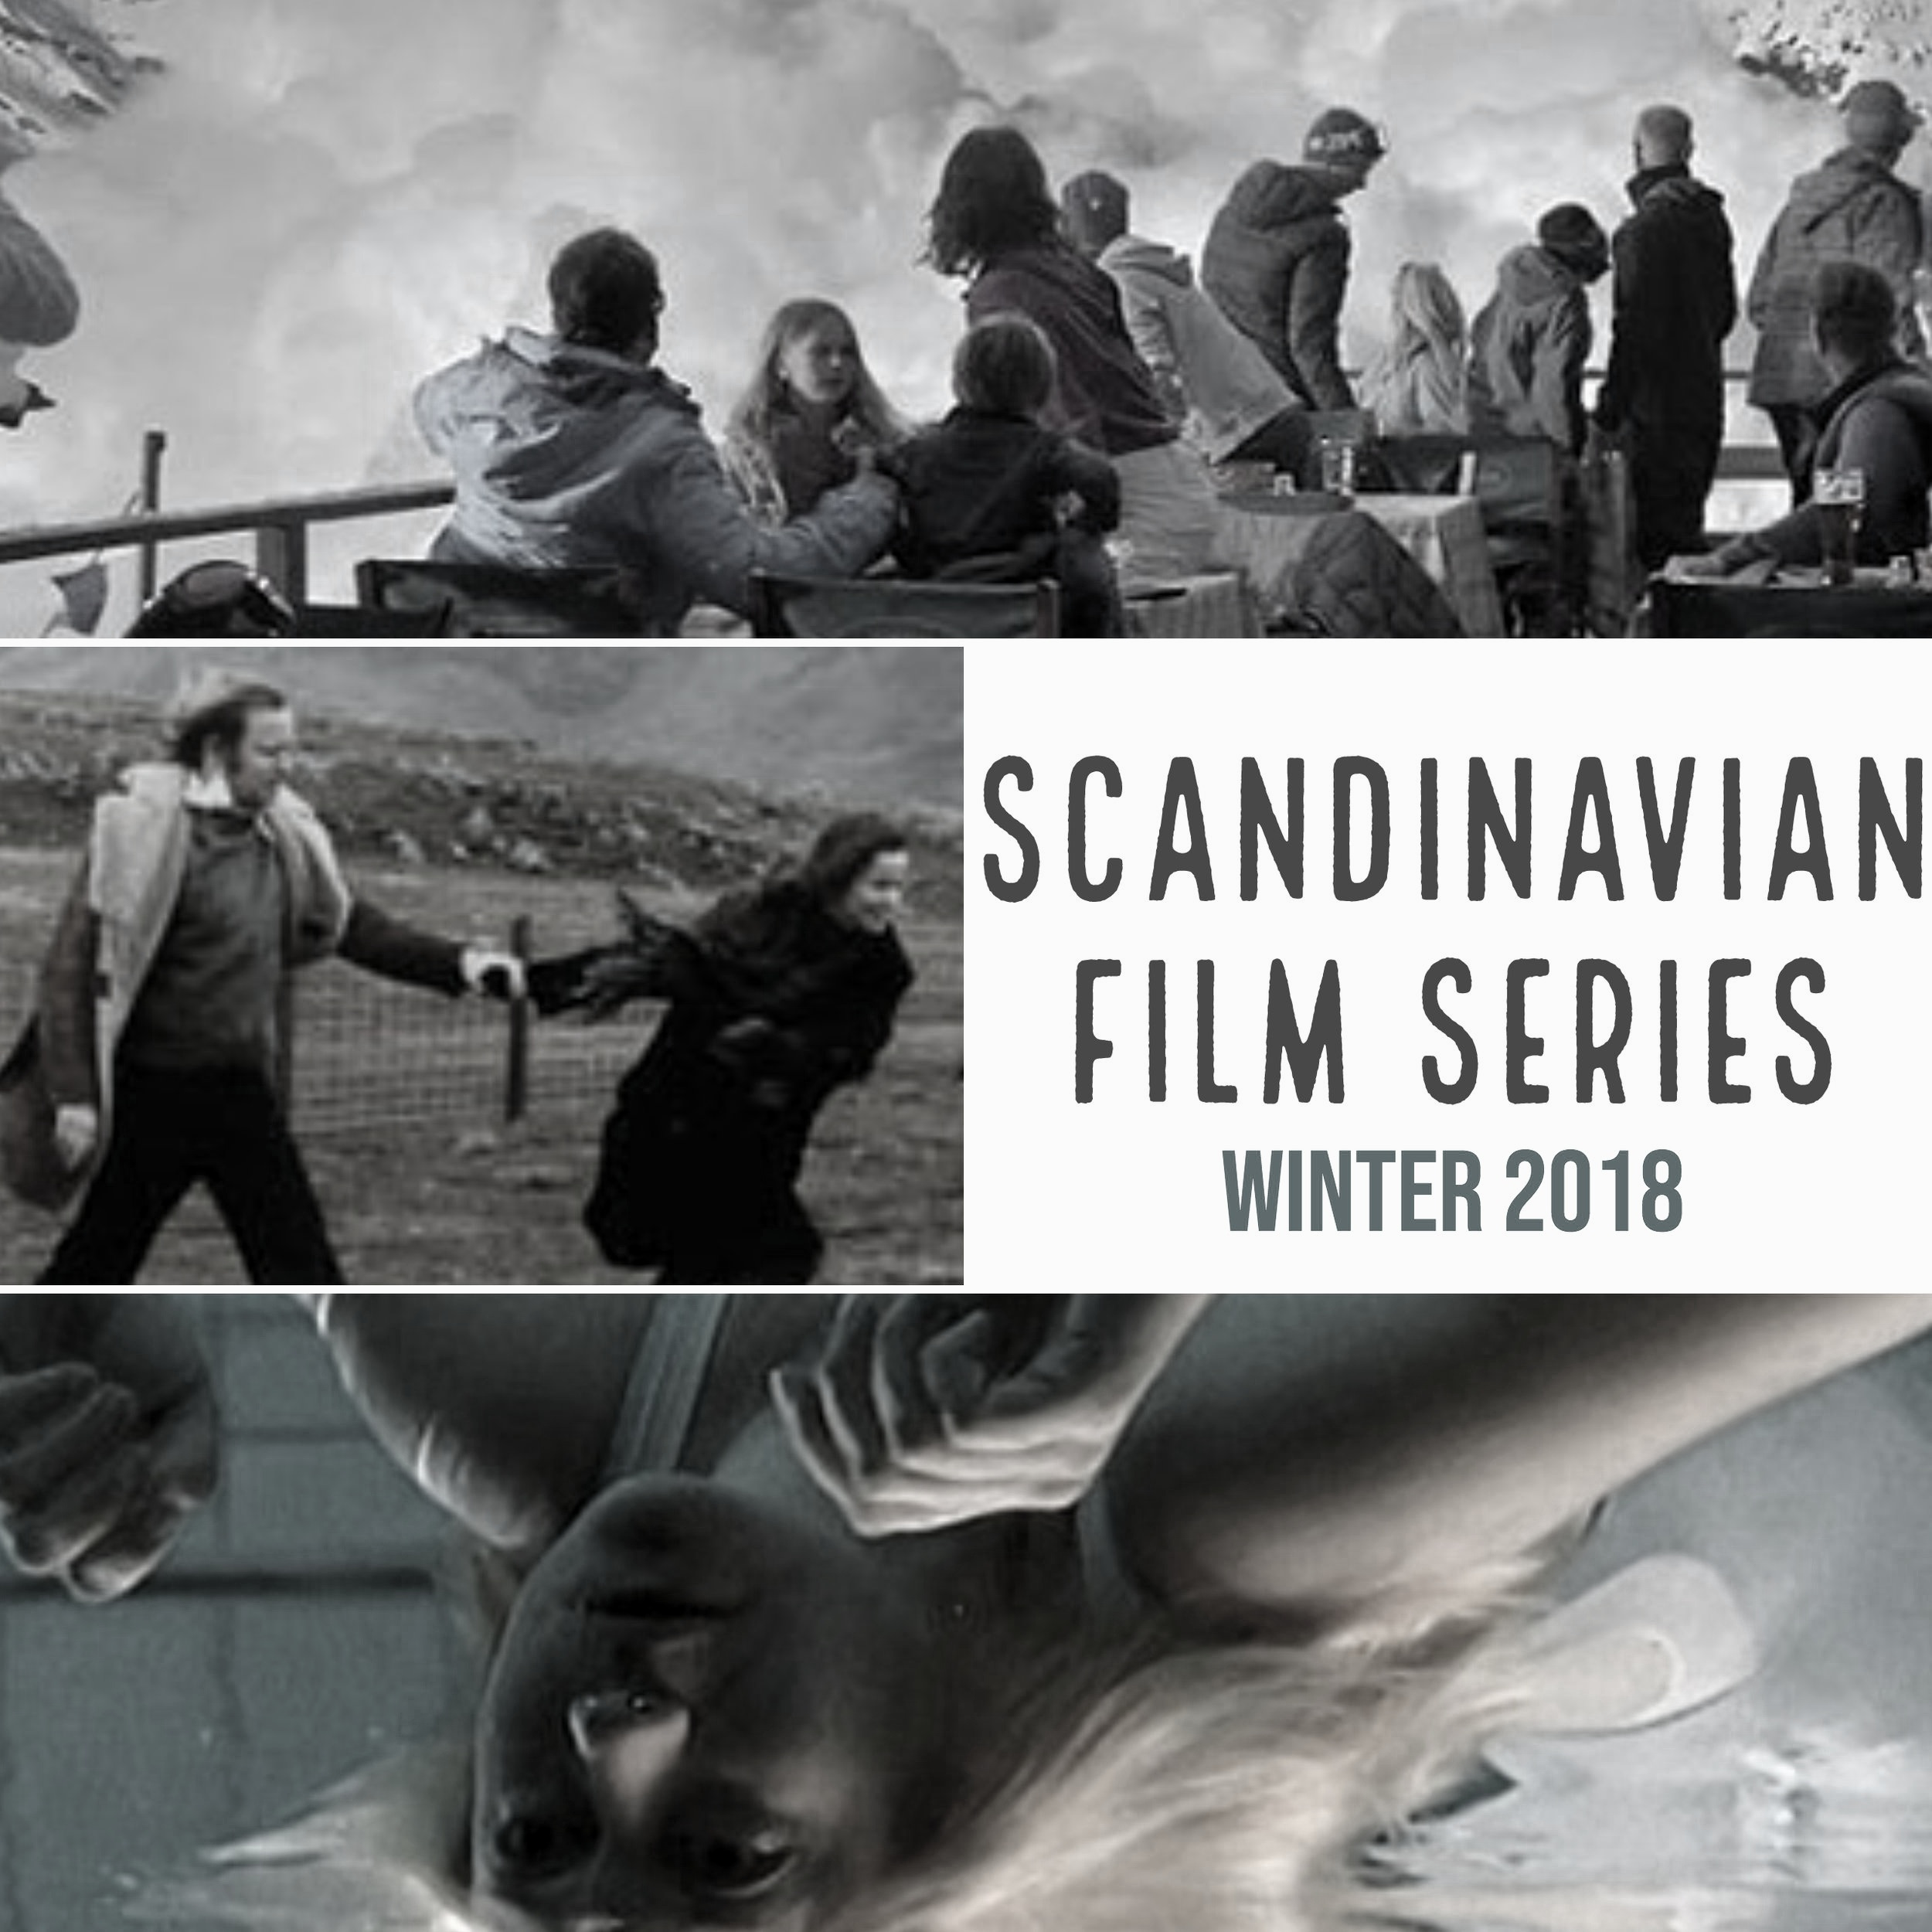 Scandinavian Film Series  download  Fall 2018